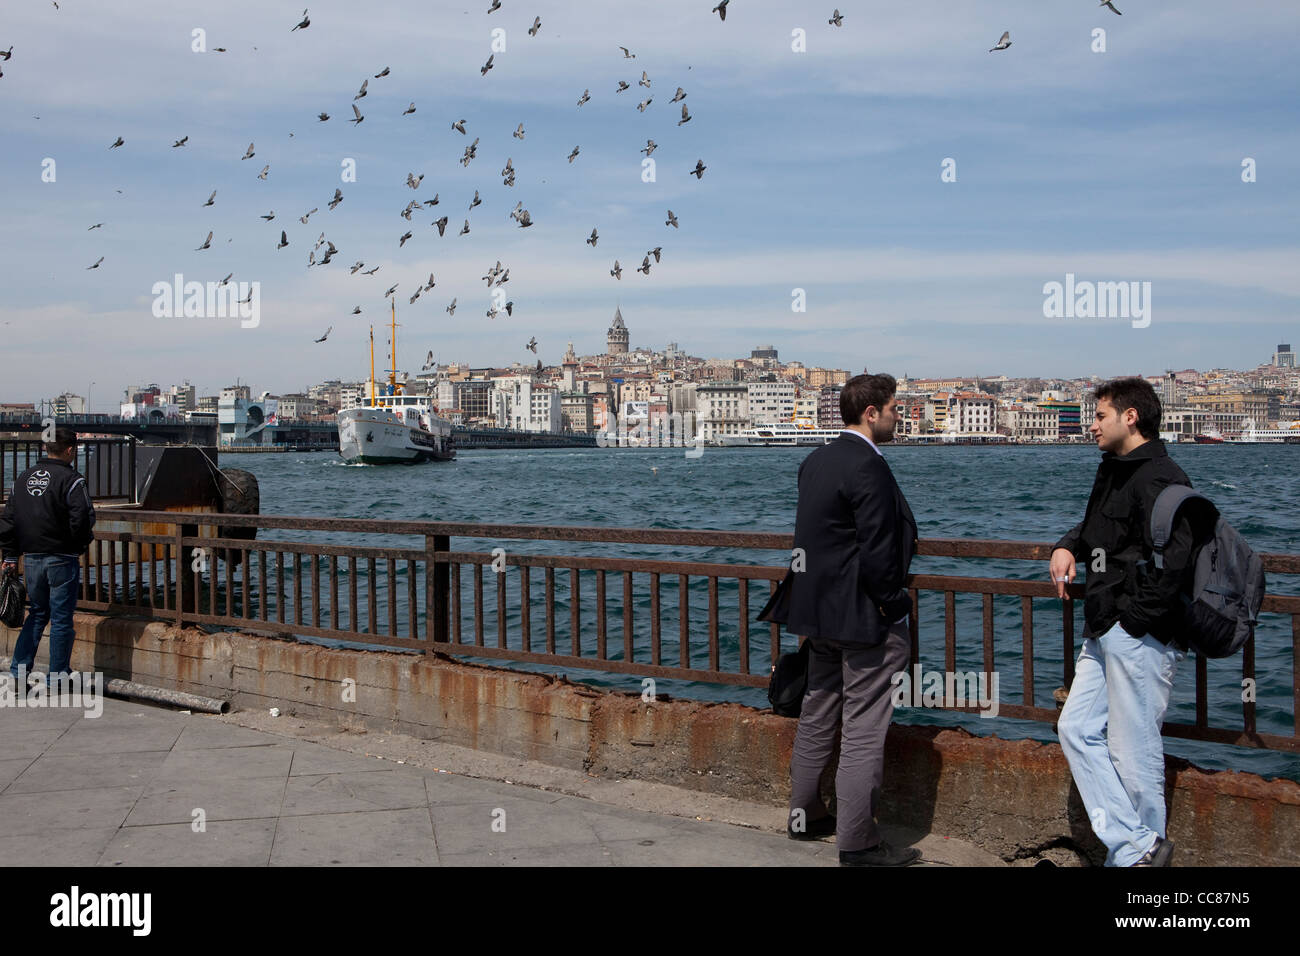 Waterfront along the Golden Horn - Istanbul, Turkey - Stock Image